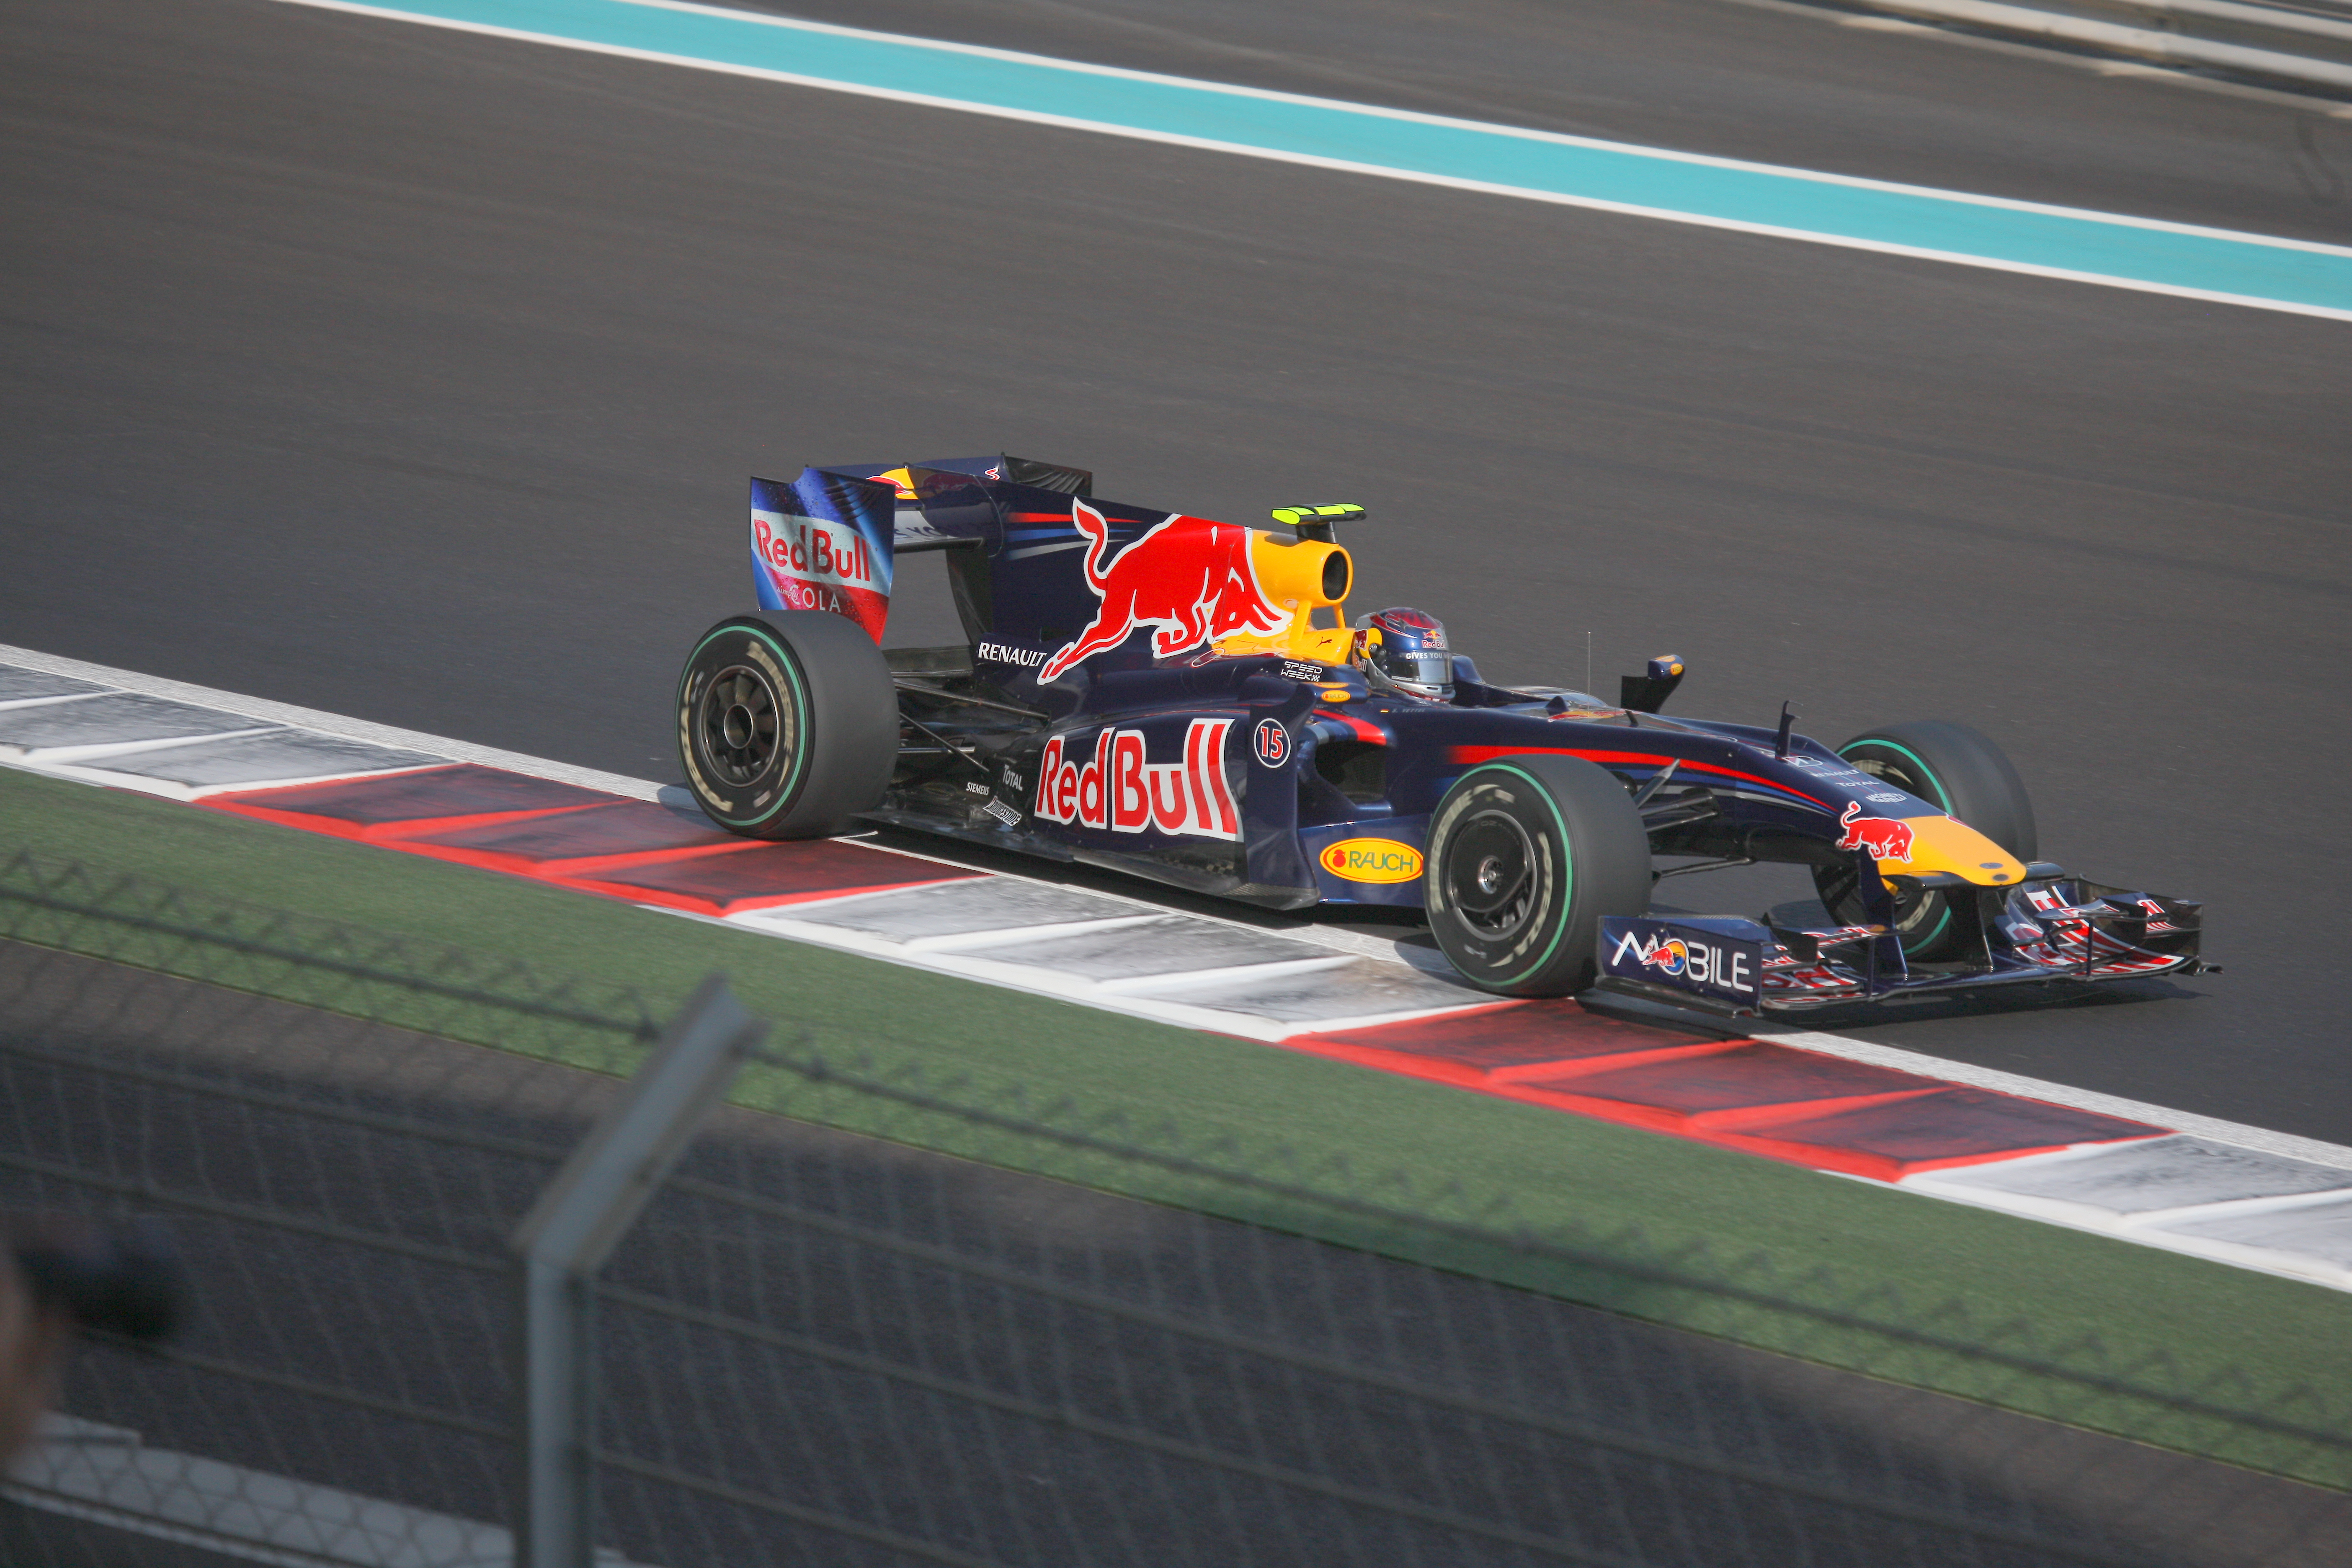 Red bull rb5 photo - 3